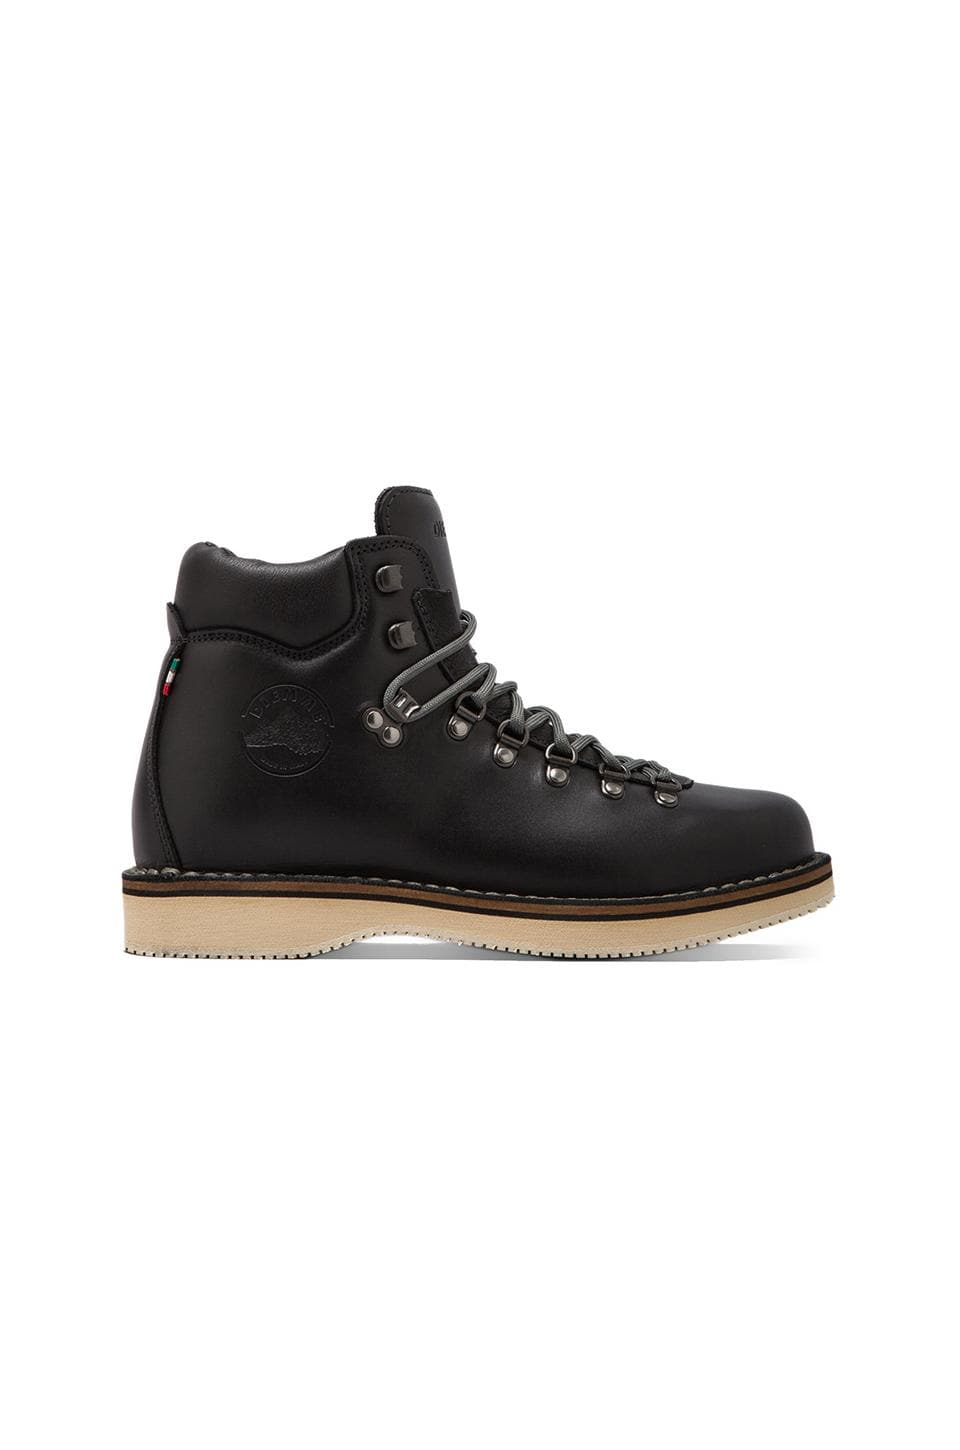 Diemme Roccia Vet Boot in Black FG